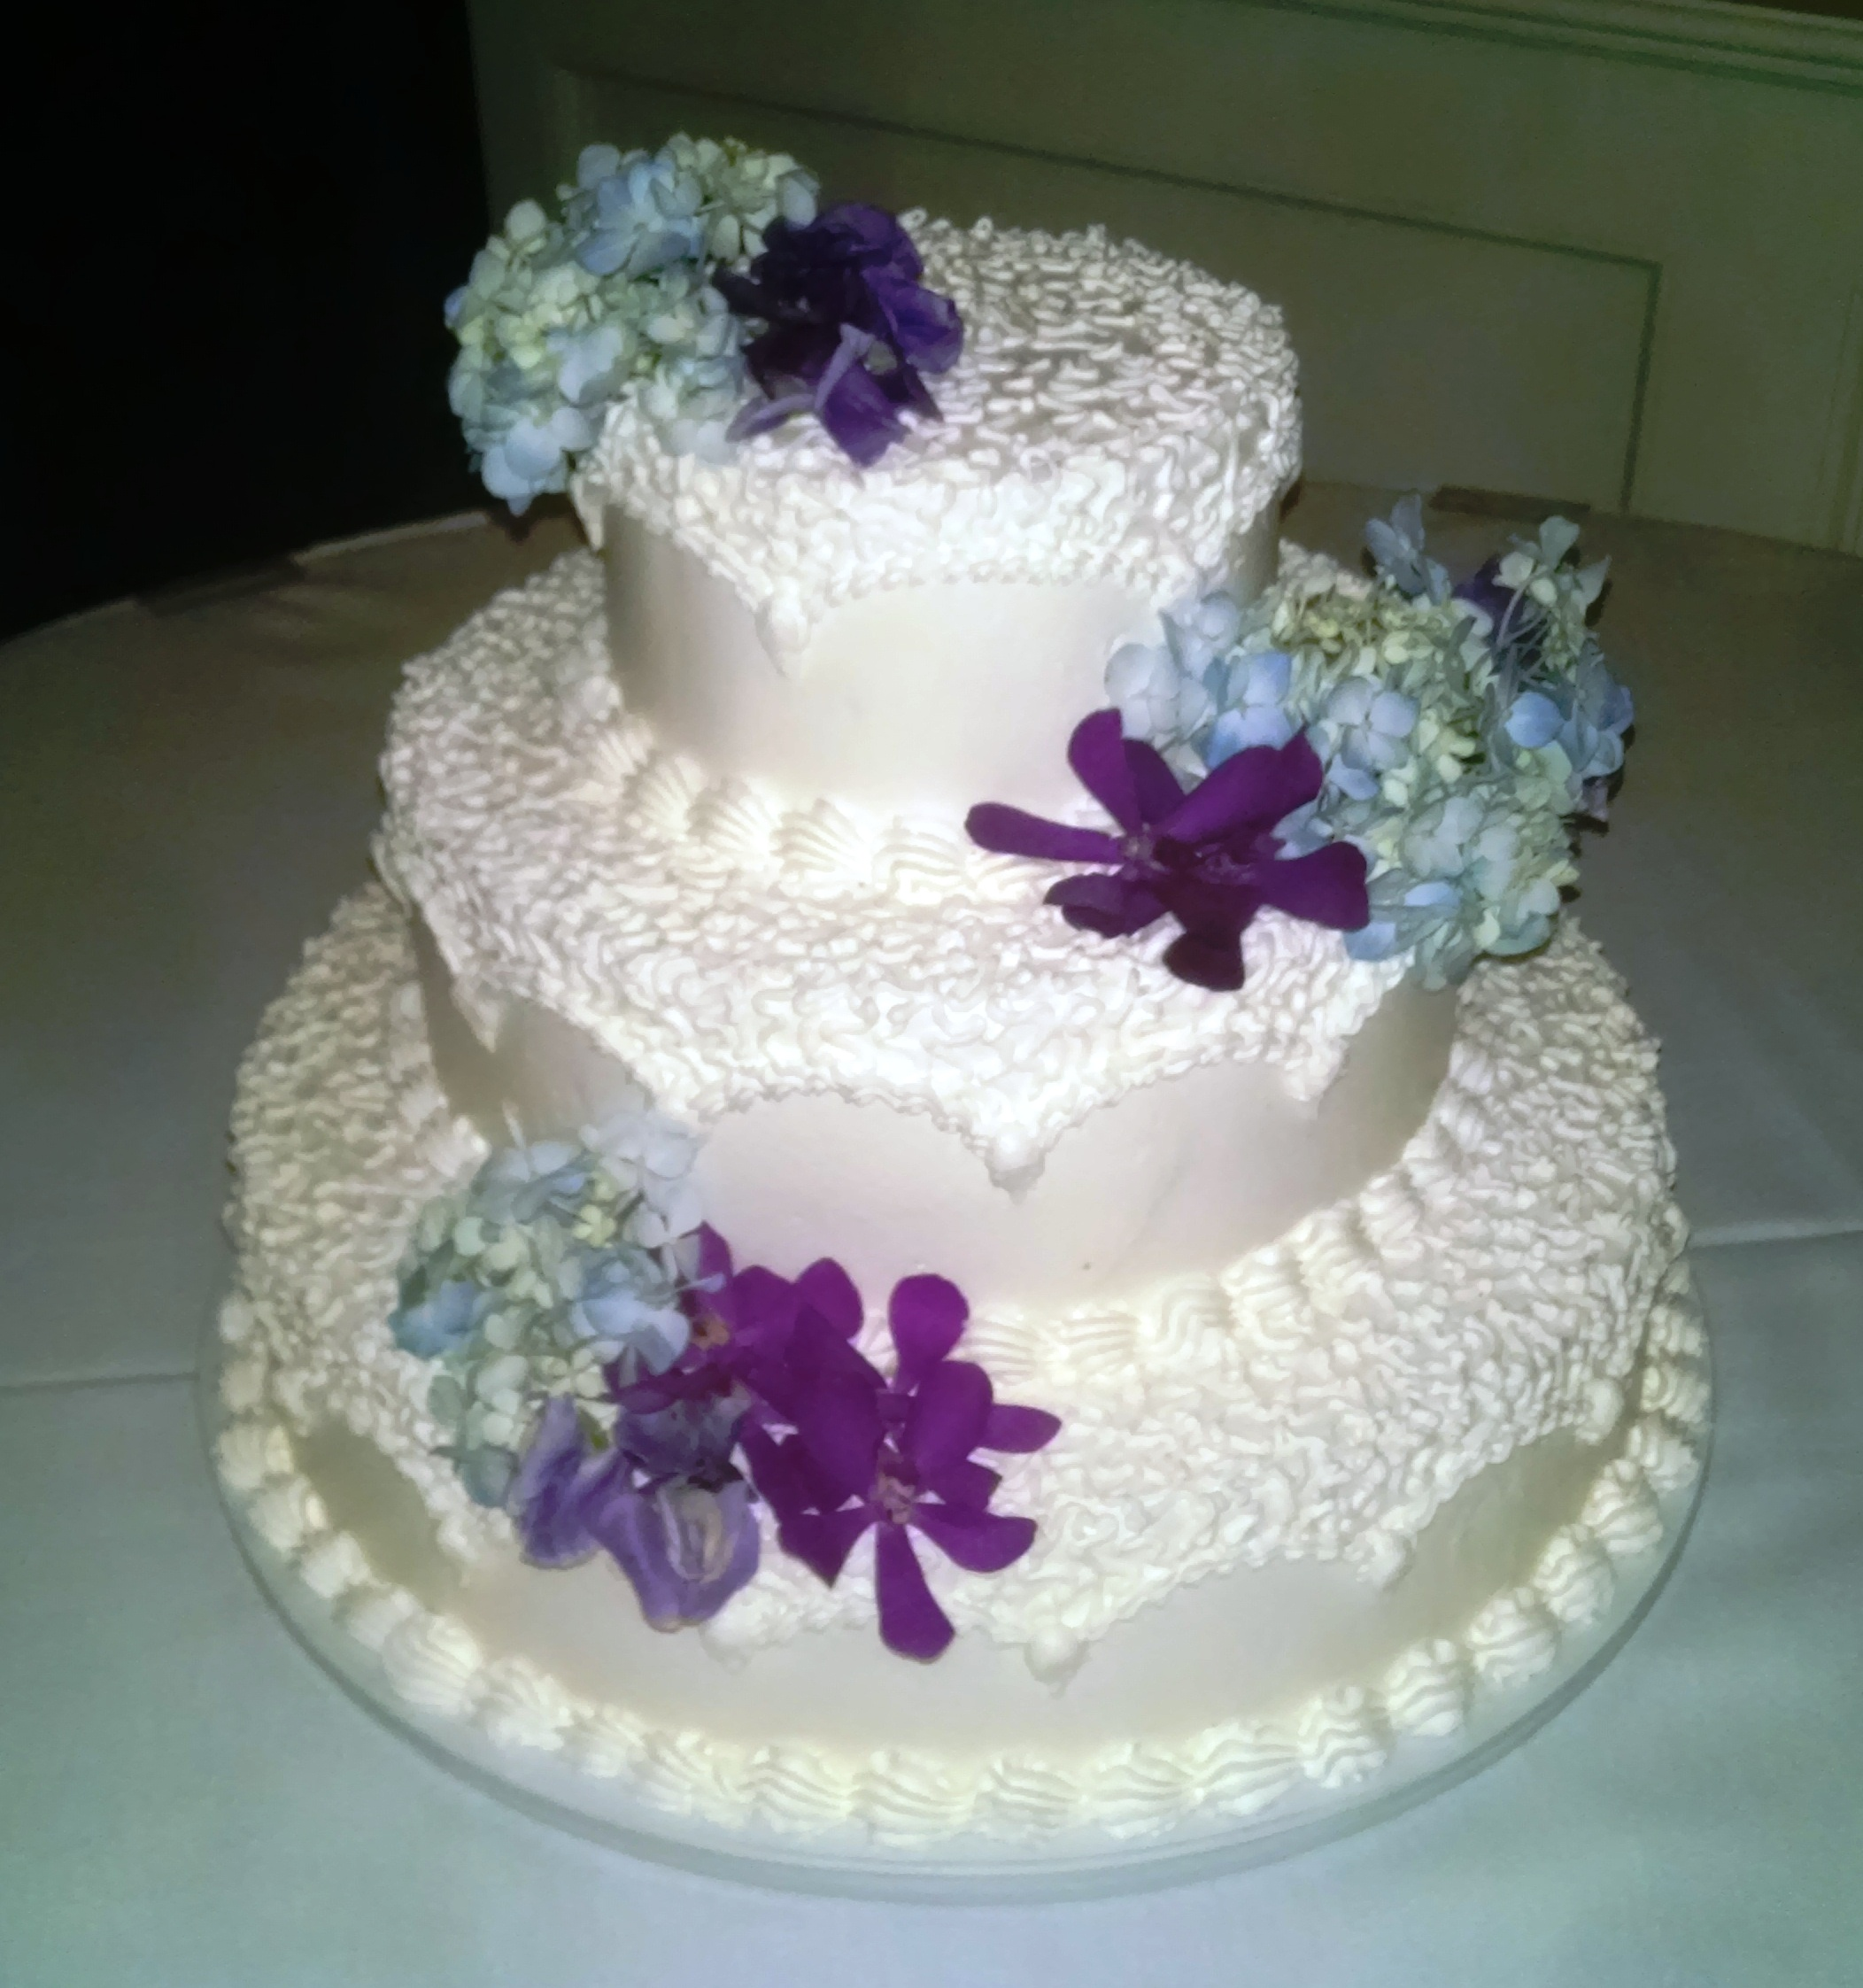 Wedding Cakes Images: Wedding Cakes